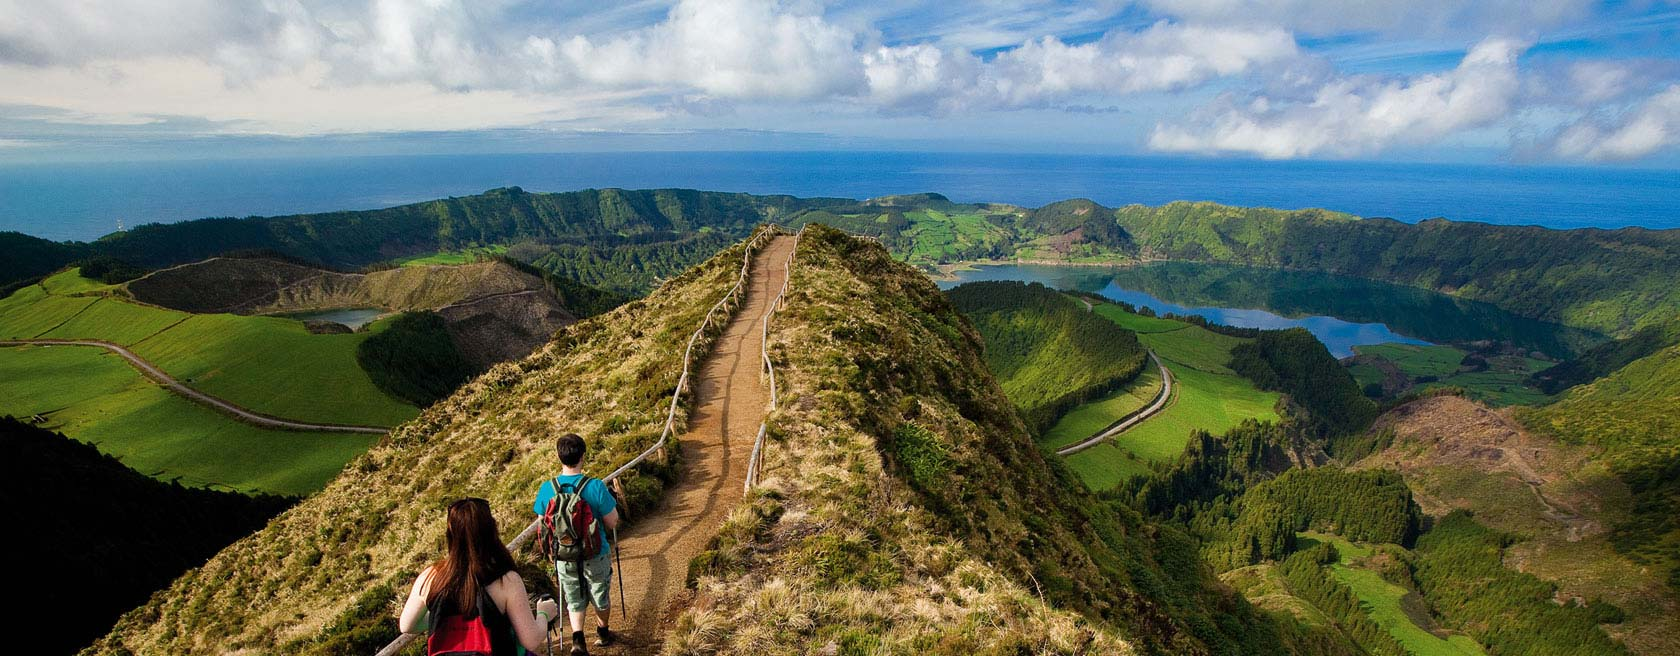 'A Journey to the Portuguese Azores Islands